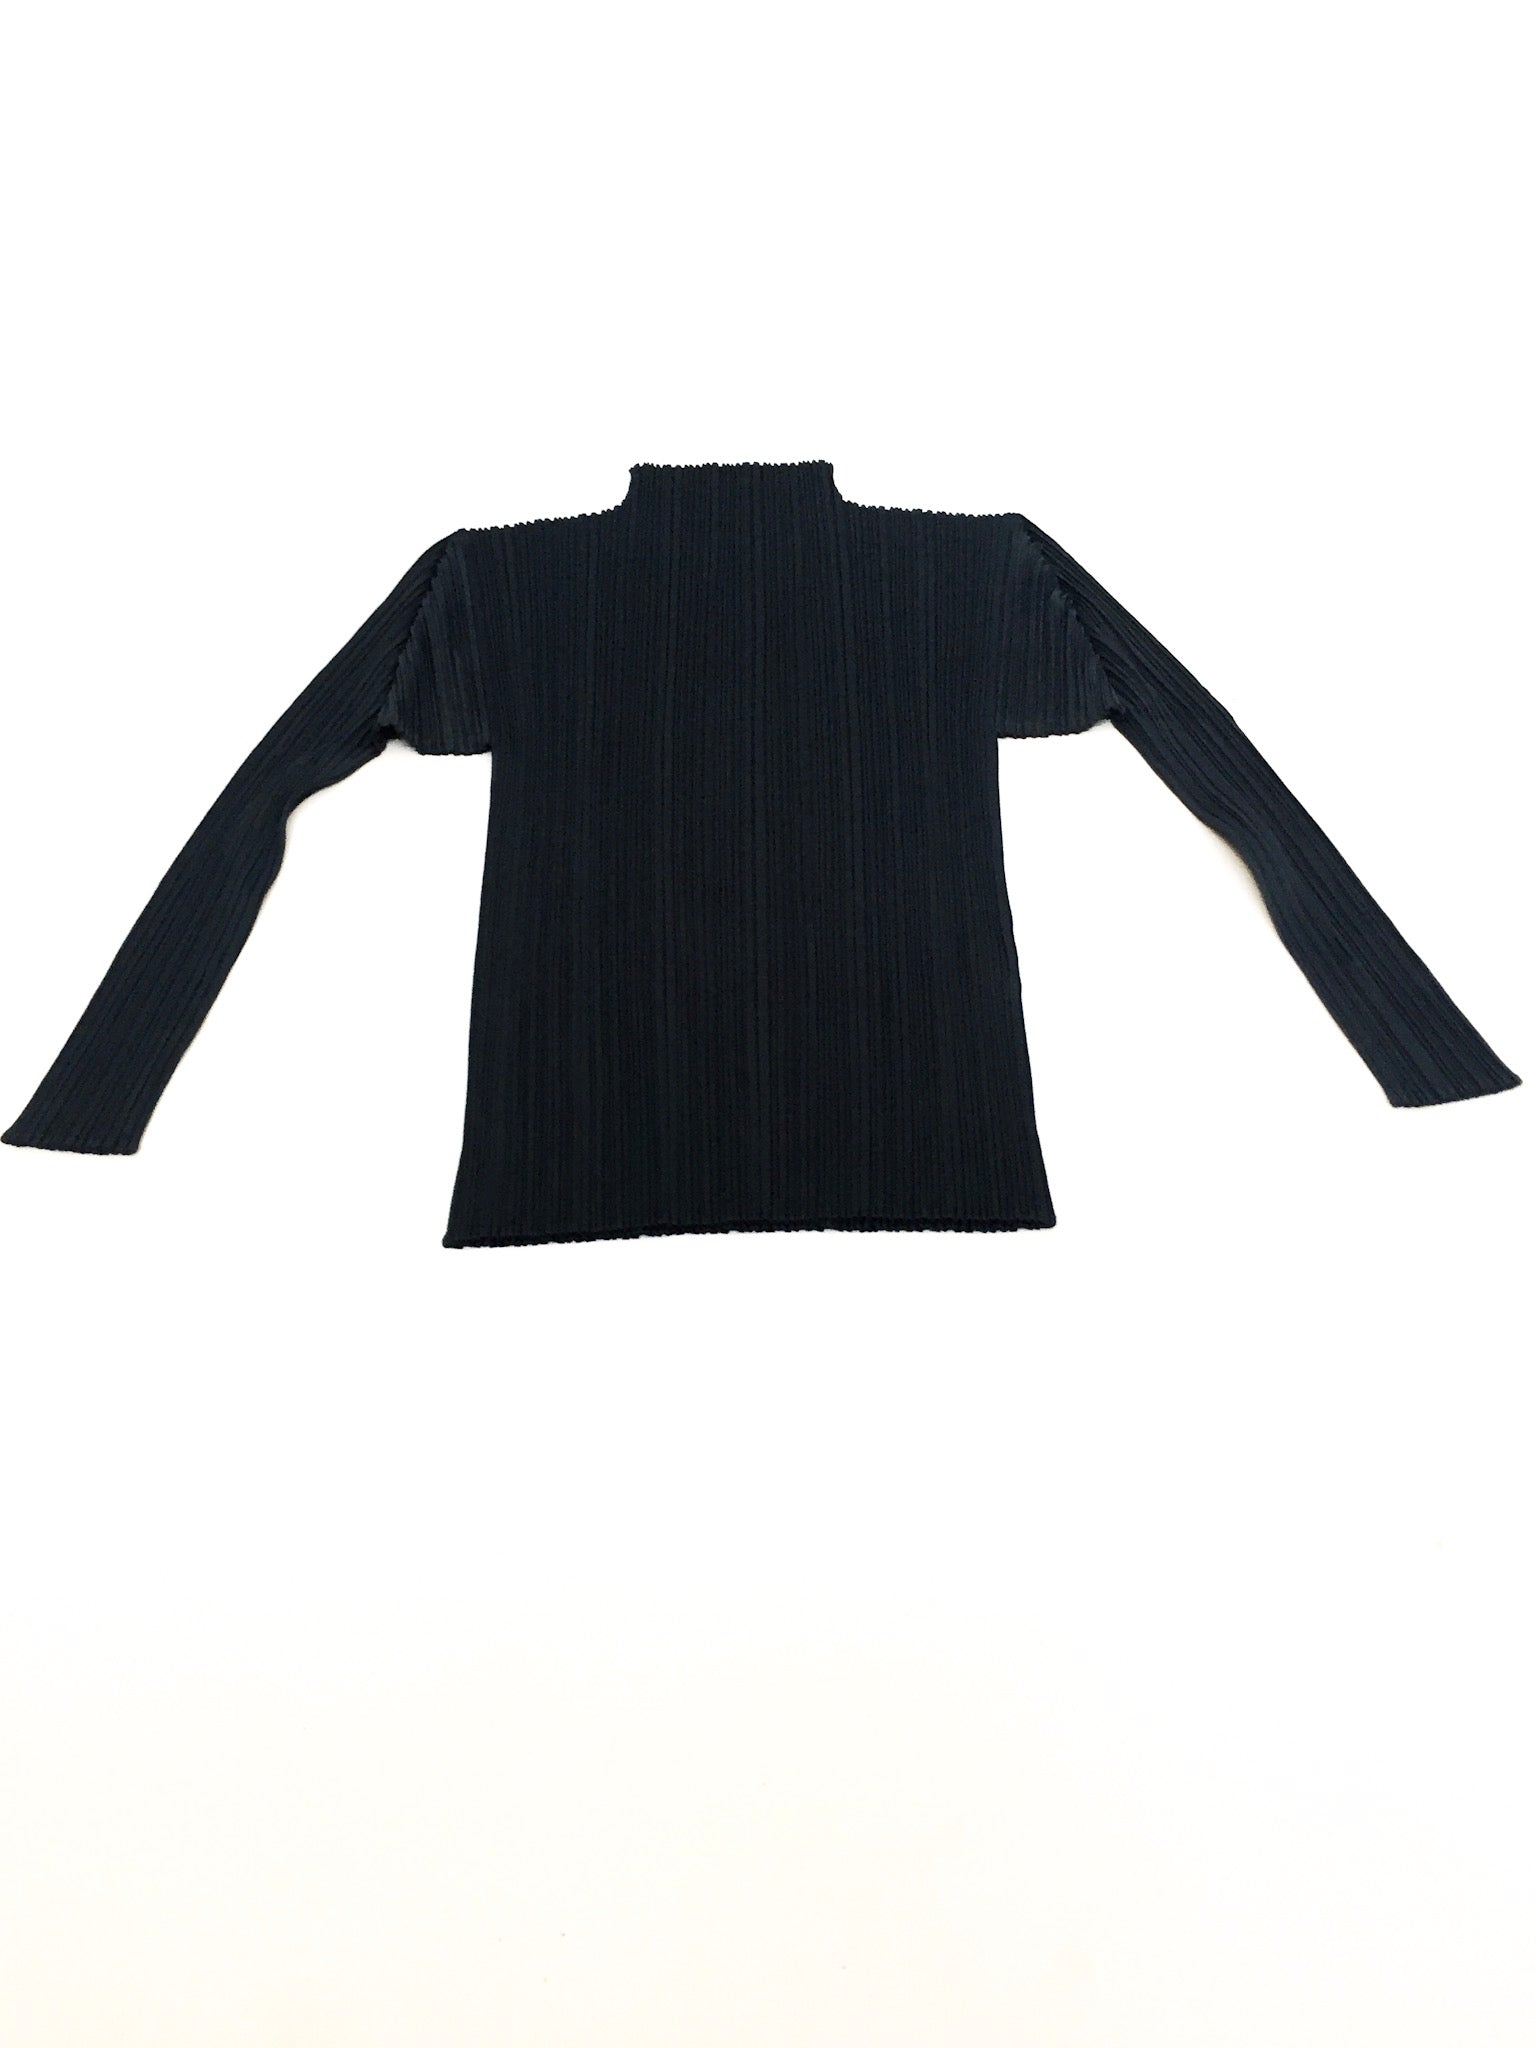 Pleats Please by Issey Miyake Long Sleeve